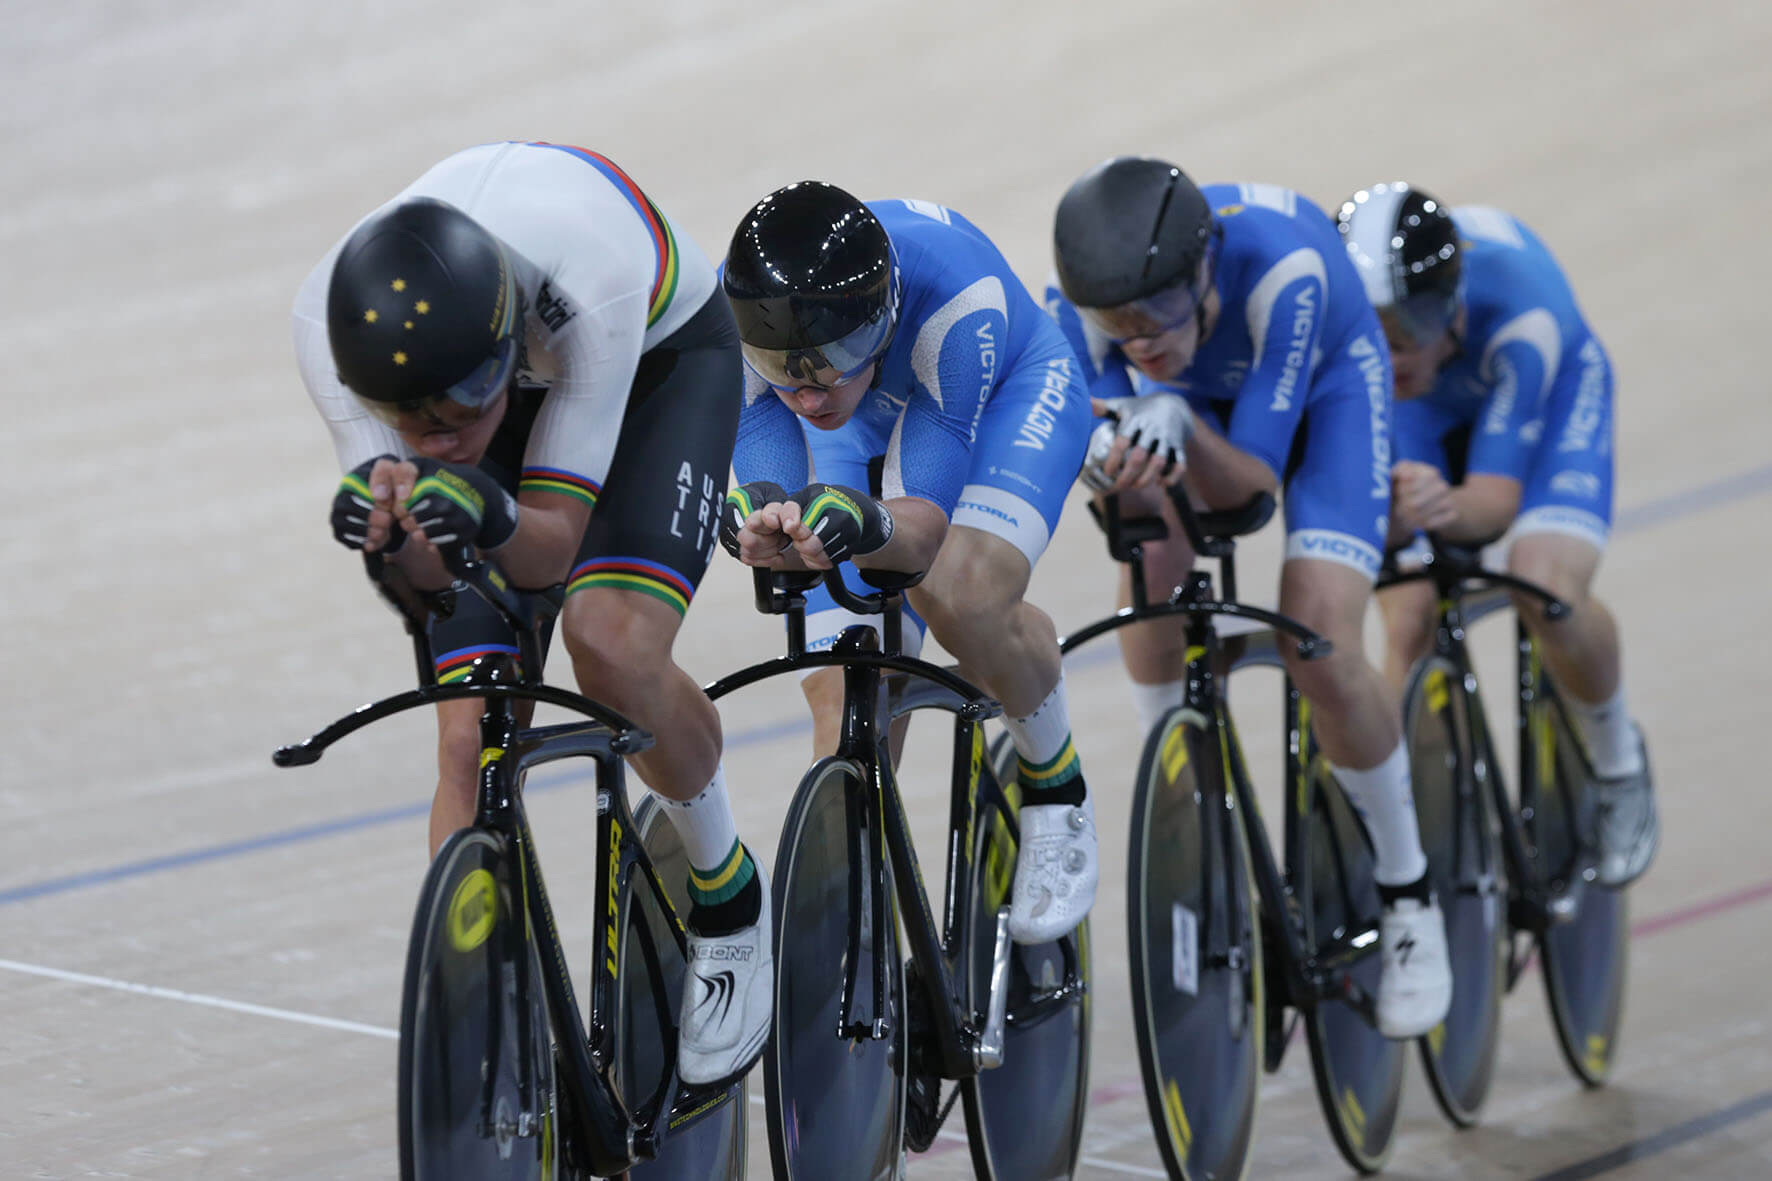 TeamPursuit